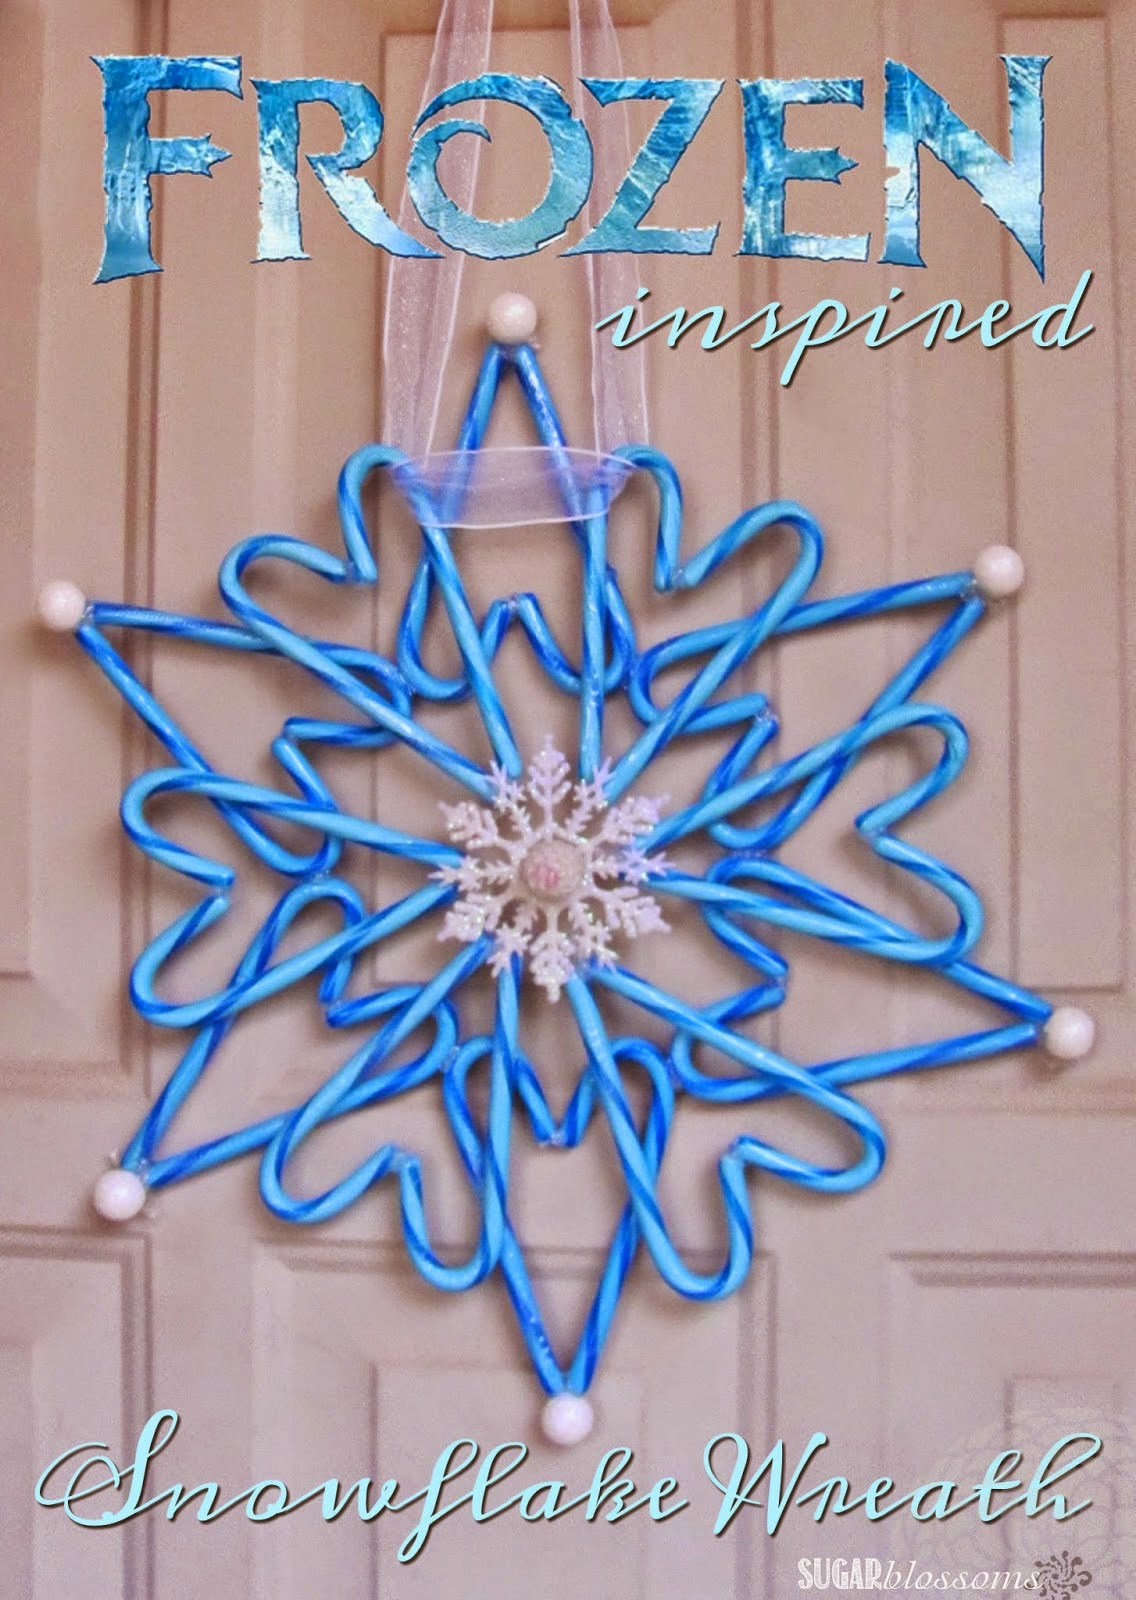 http://sweetsugarblossoms.blogspot.com/2014/12/frozen-inspired-snowflake-wreath.html